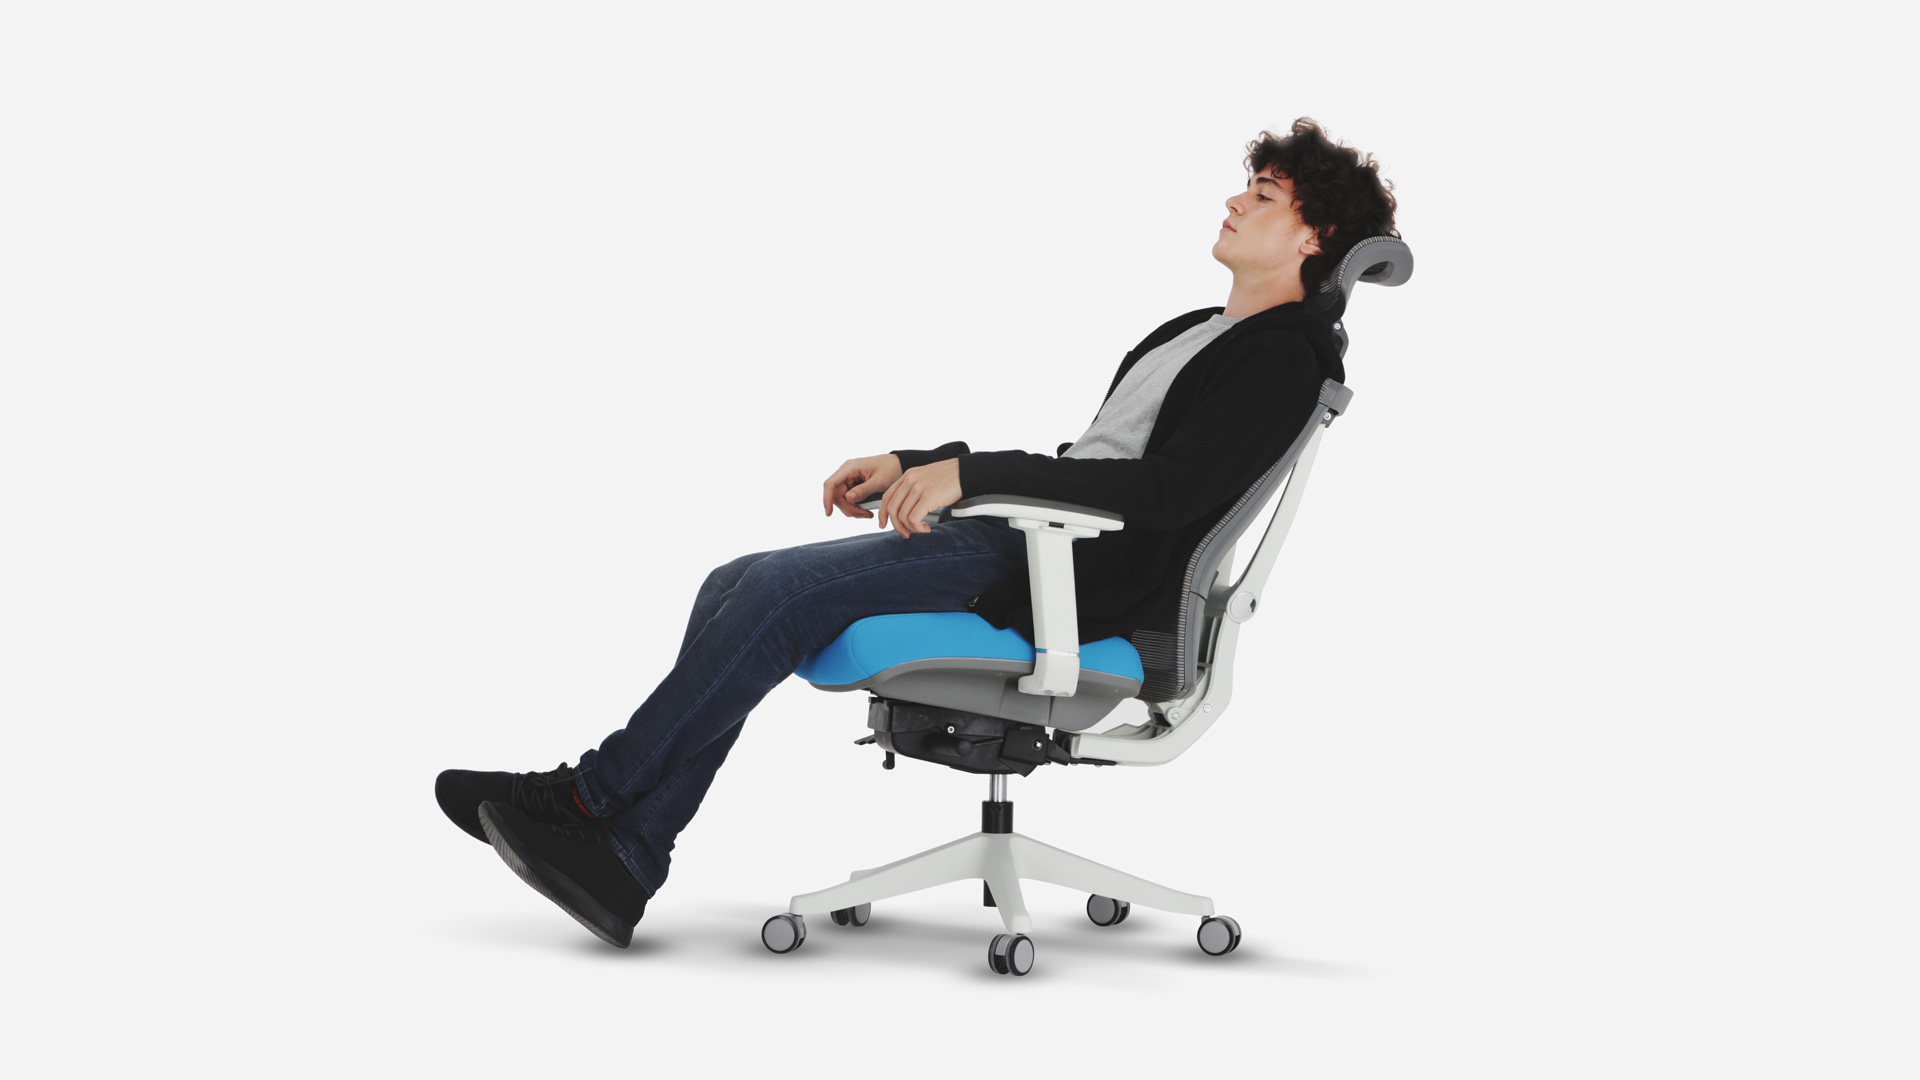 How comfortable is sleeping in an office chair?